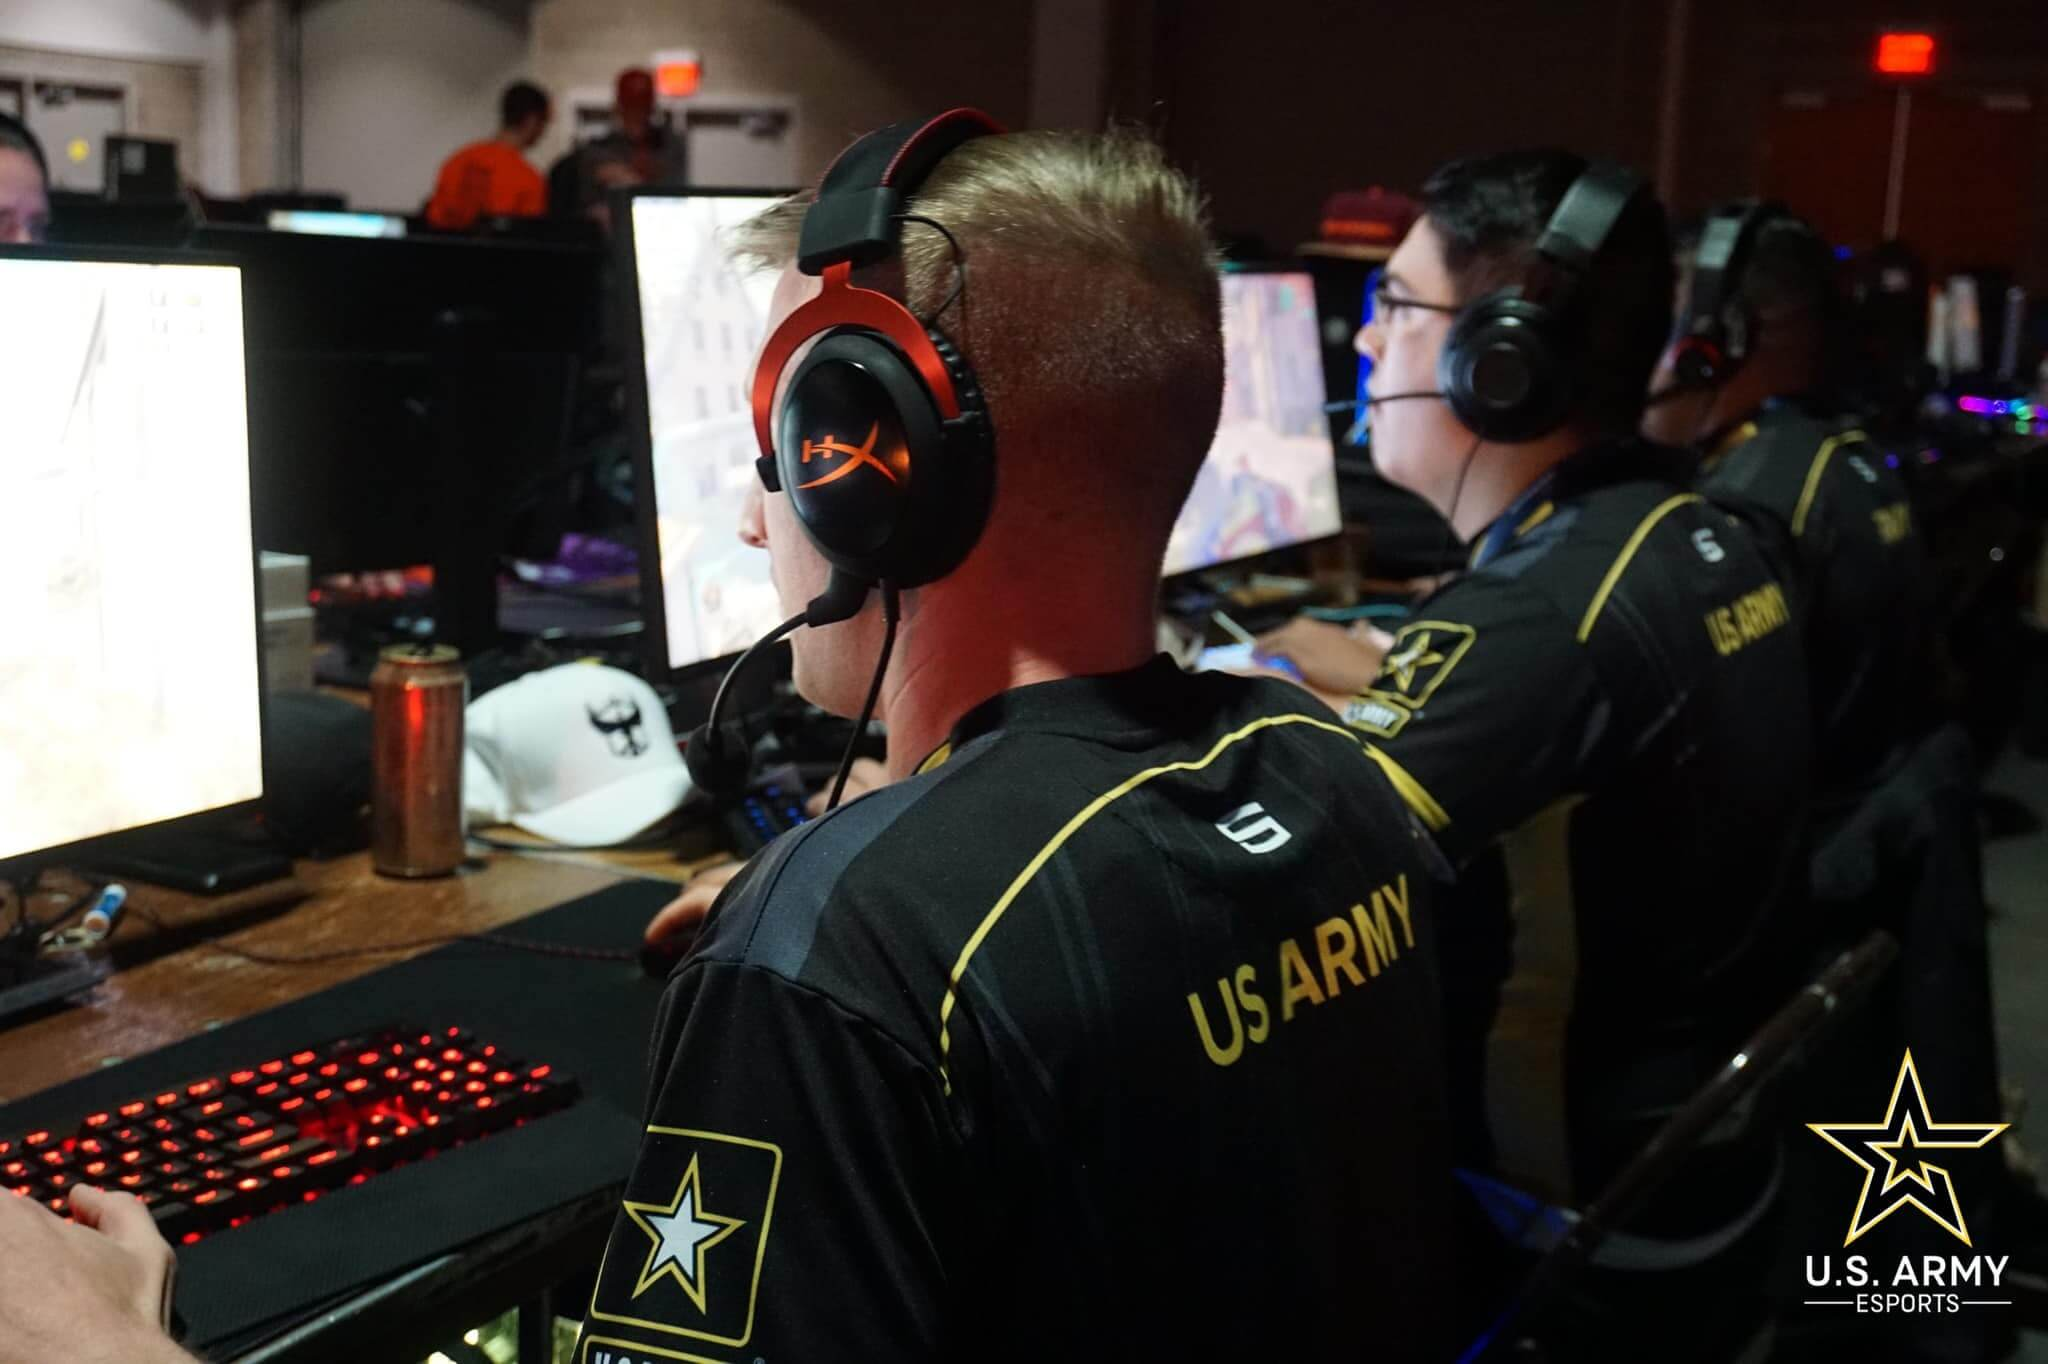 <p>Twitch stops US army's fake competitions that Led viewers to Recruiting page thumbnail